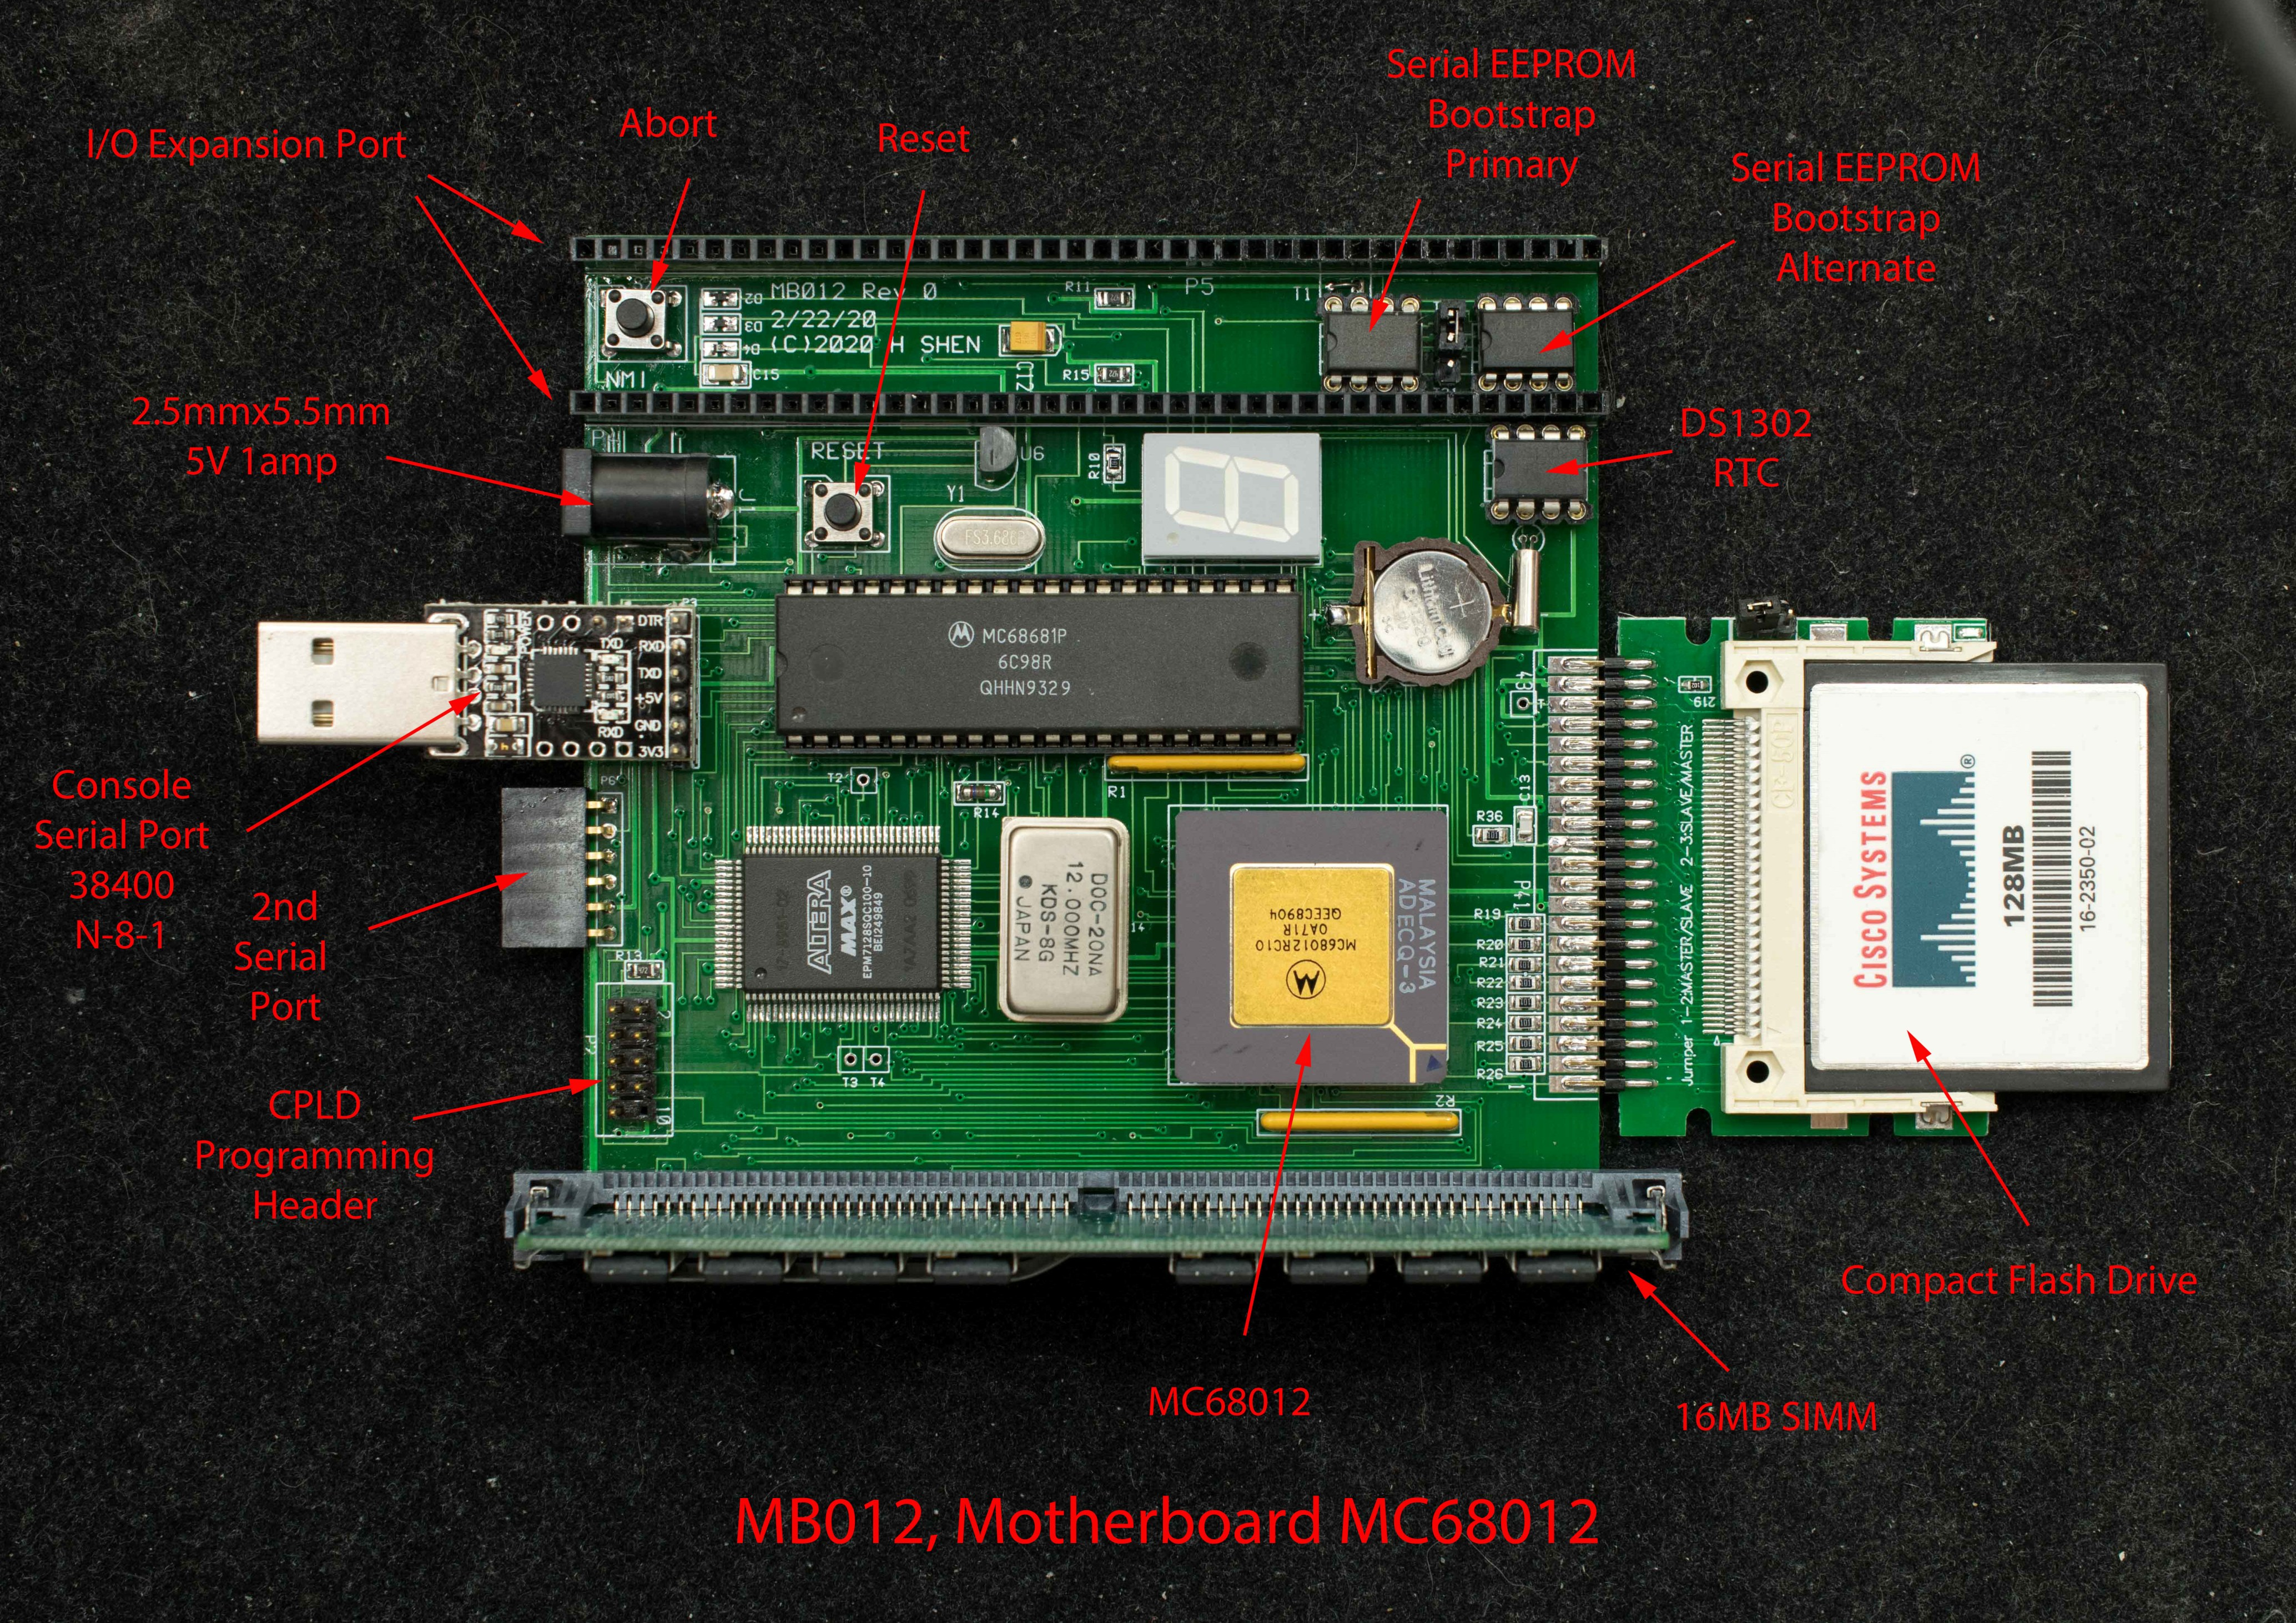 www.retrobrewcomputers.org_lib_plugins_ckgedit_fckeditor_userfiles_image_builderpages_plasmo_mb012_mb012_annotated.jpg